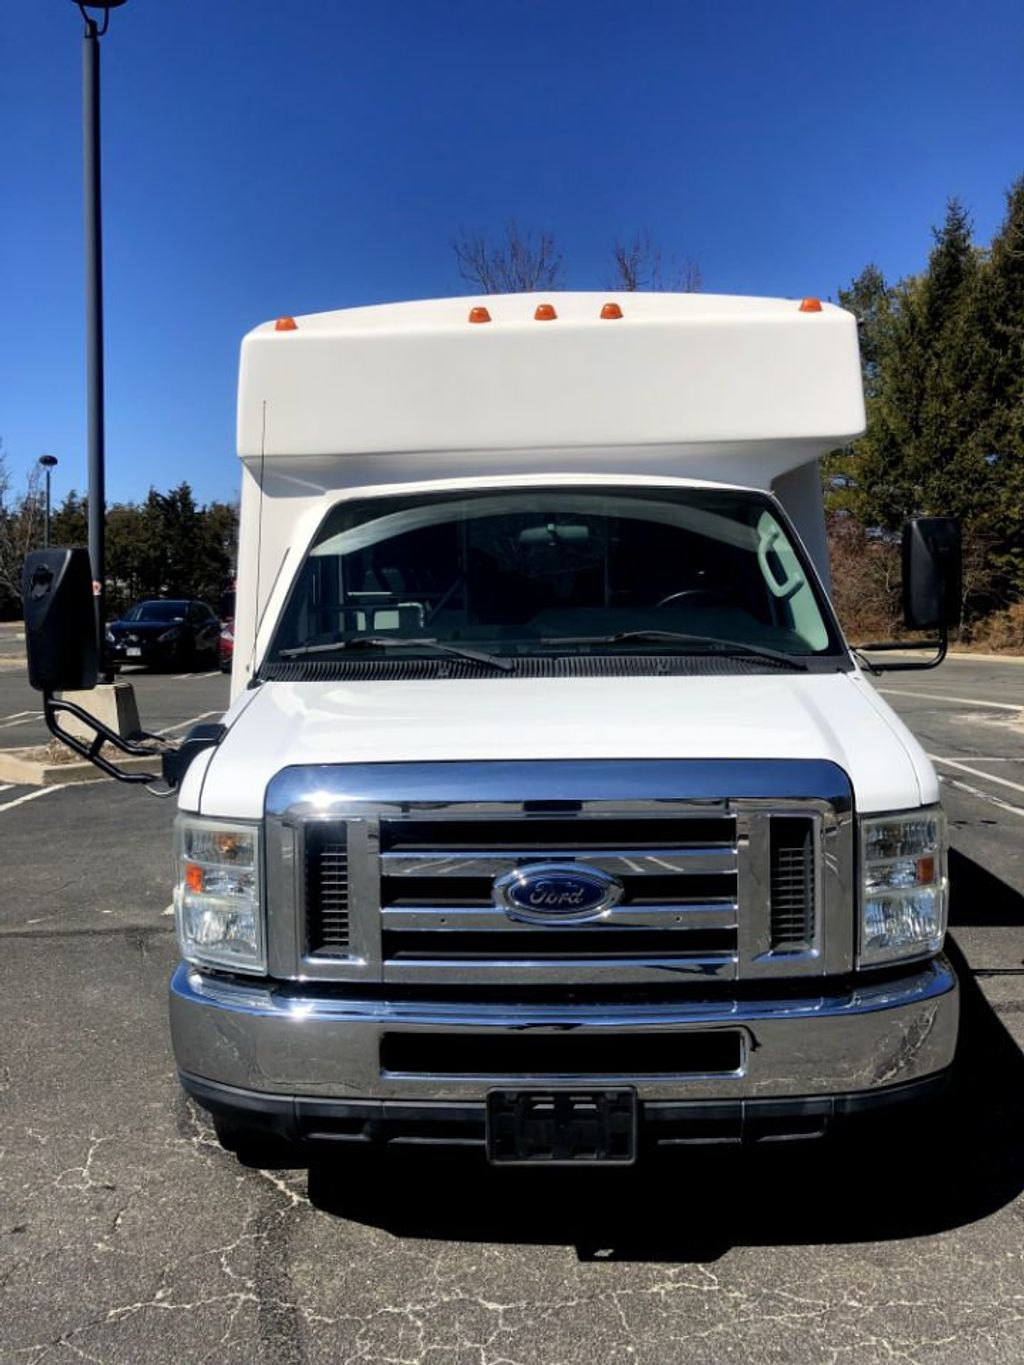 2010 Ford E350 Diamond Non-CDL Wheelchair Bus For Sale For Church Adults Senior Medical Transport Handicapped - 18736449 - 1